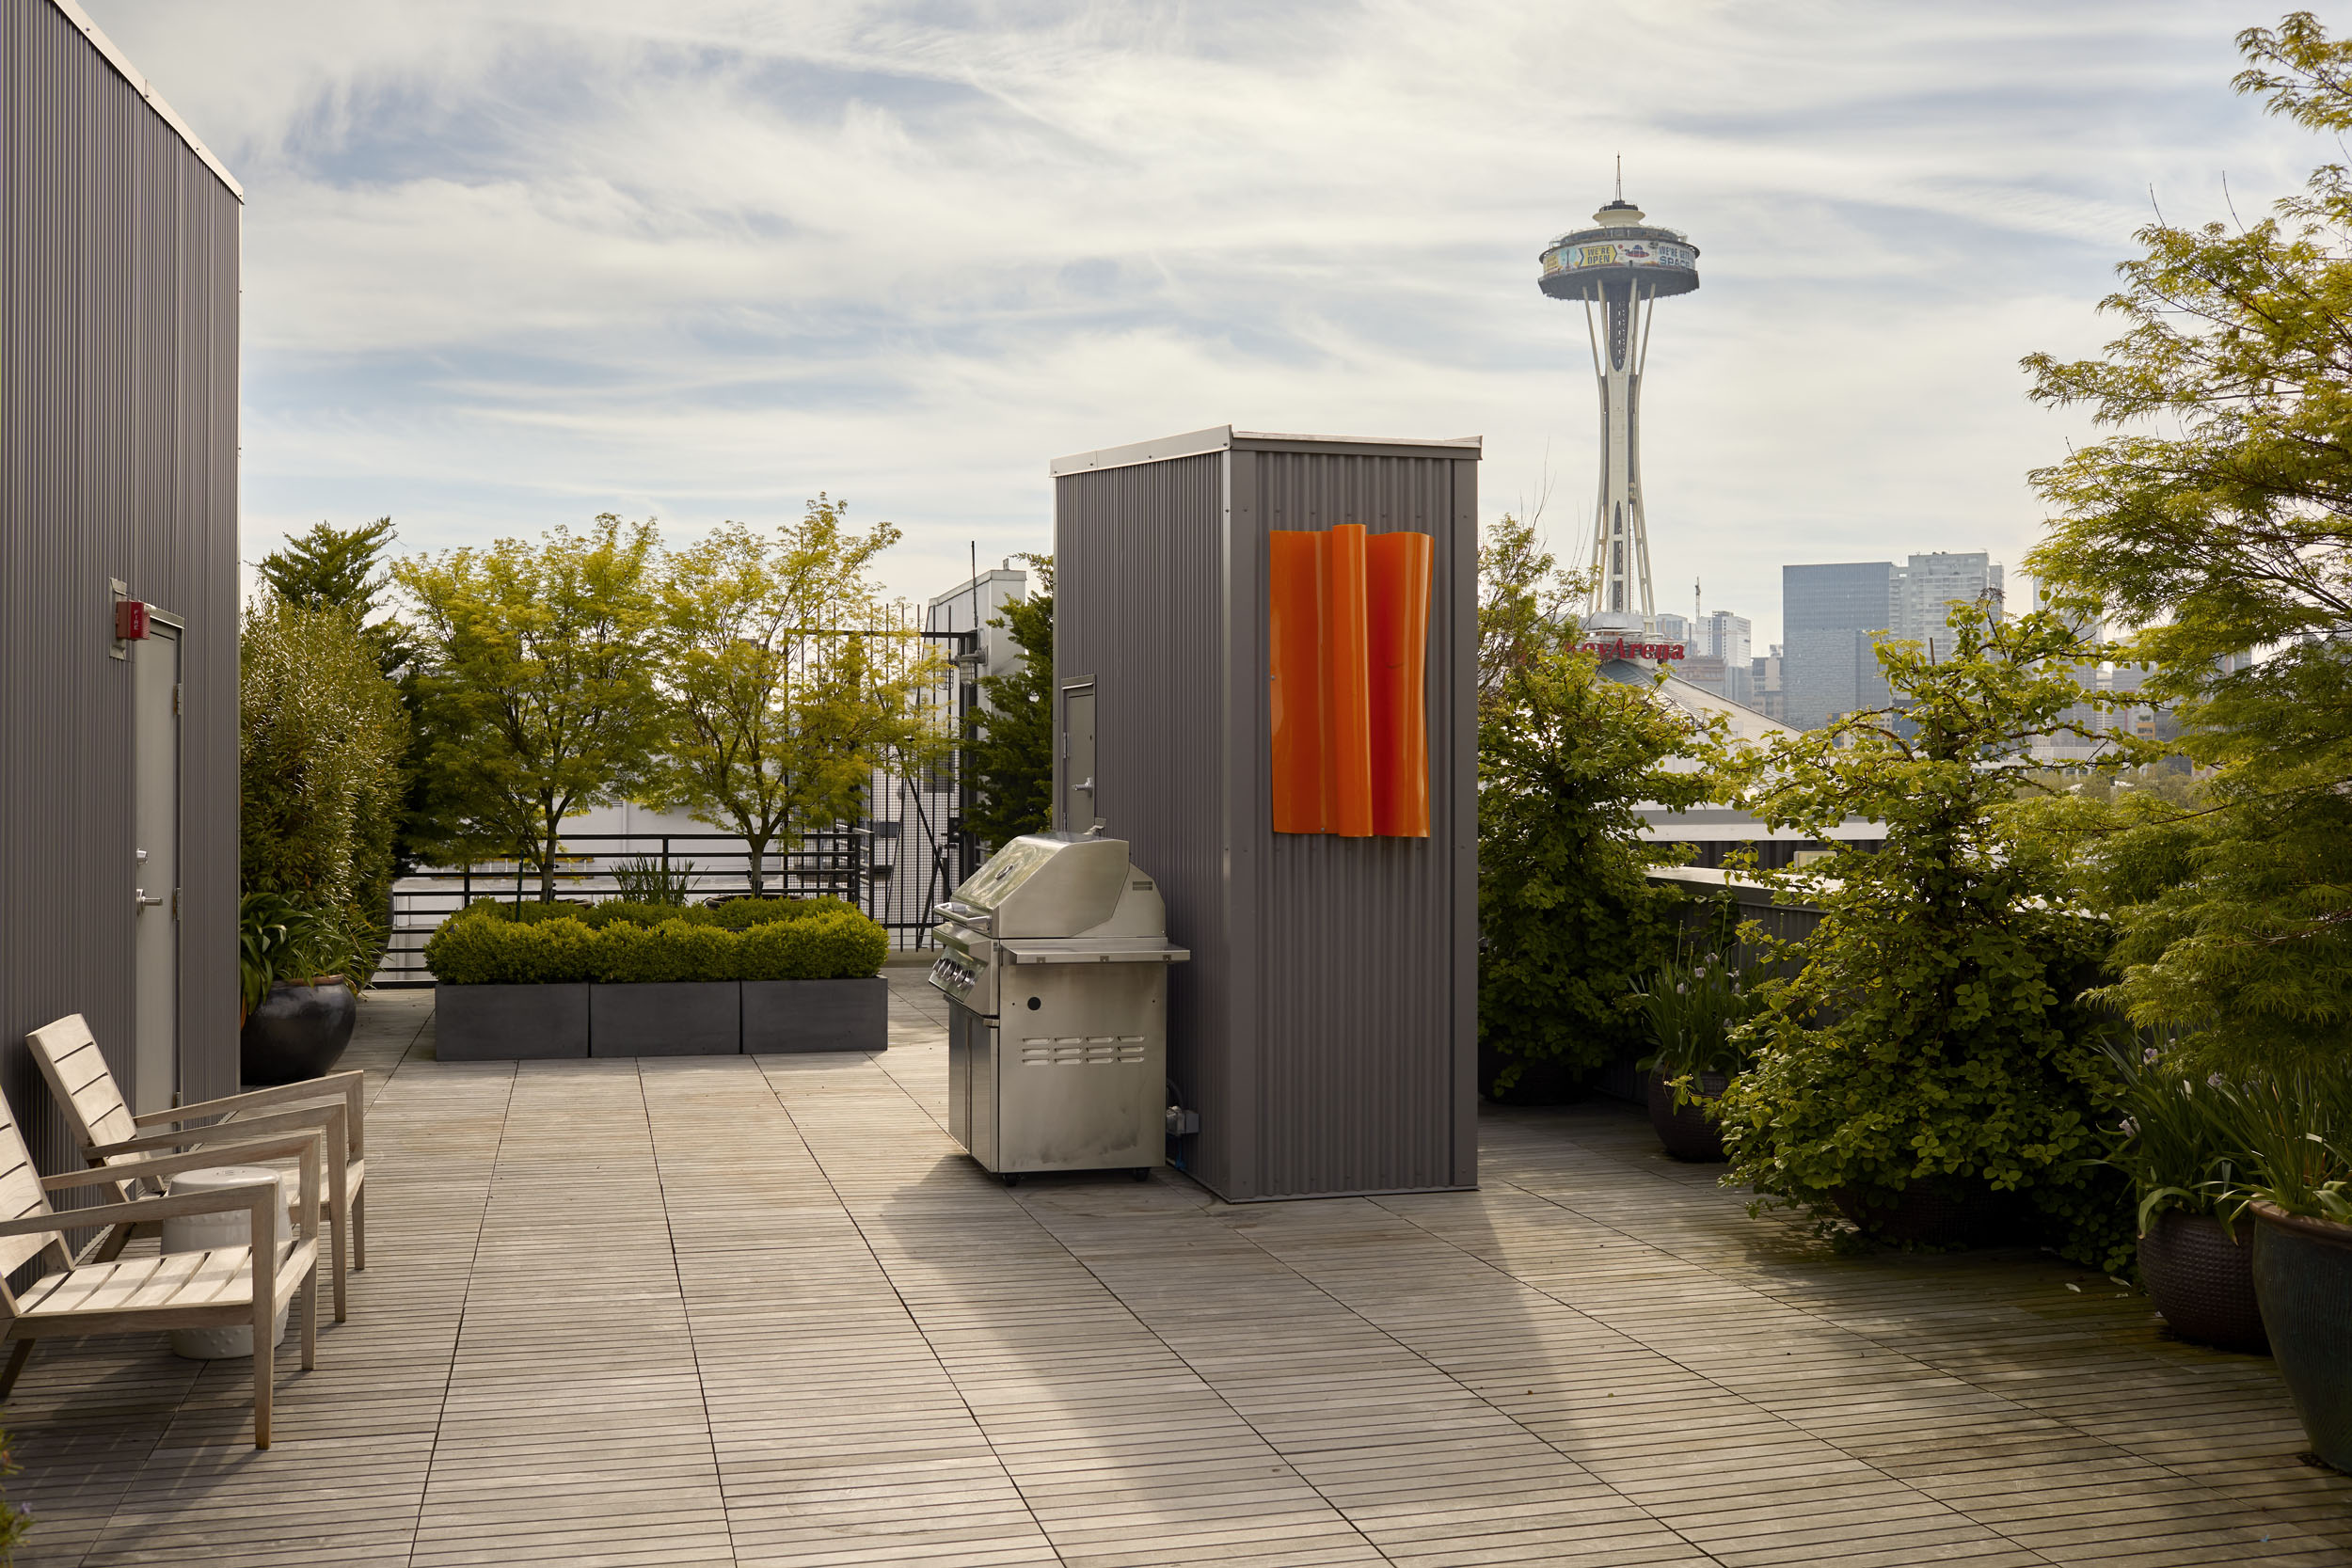 Roof Deck & Space Needle